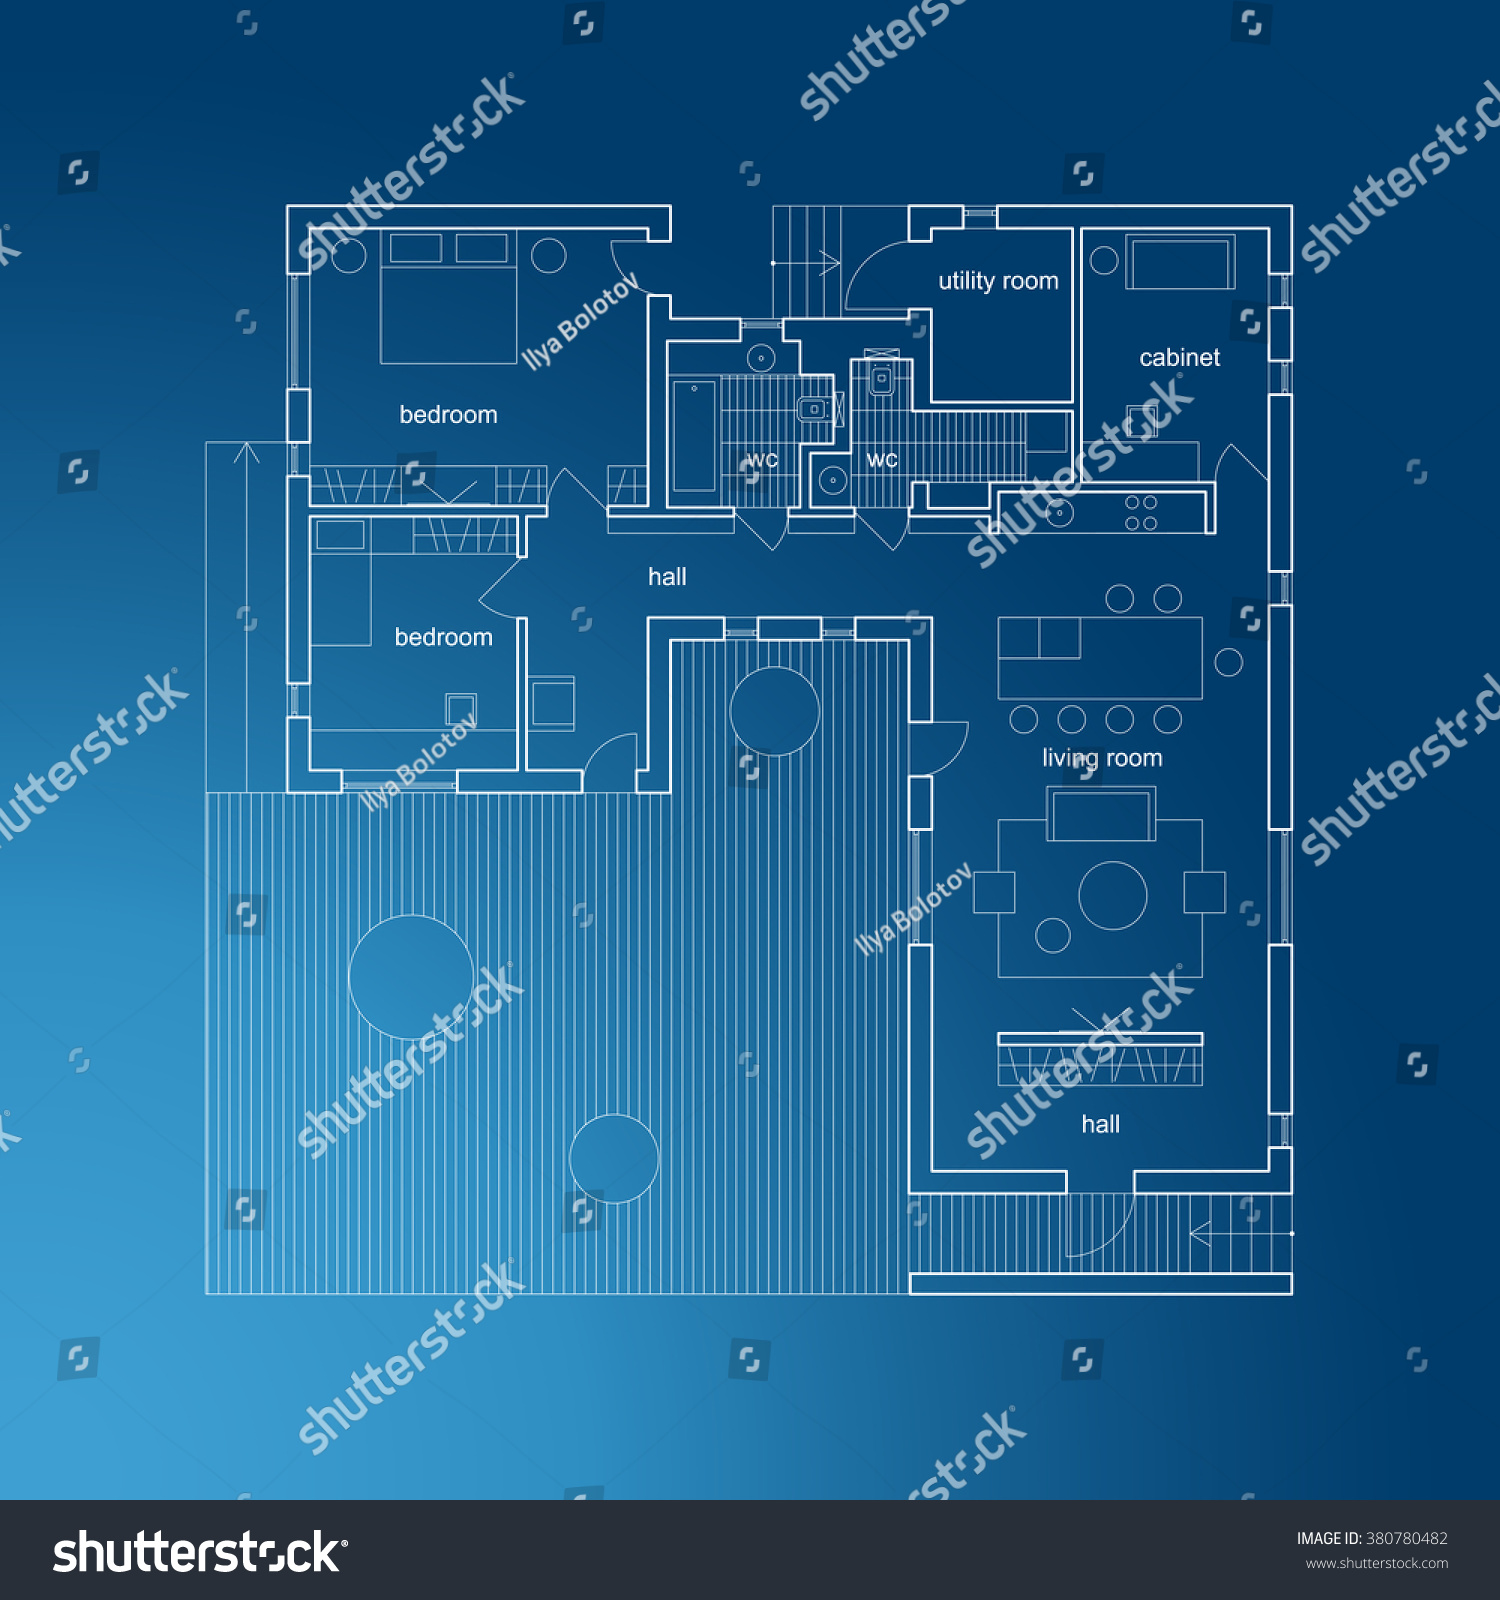 Architectural plan modern house vector blueprint vector de architectural plan of modern house vector blueprint malvernweather Choice Image